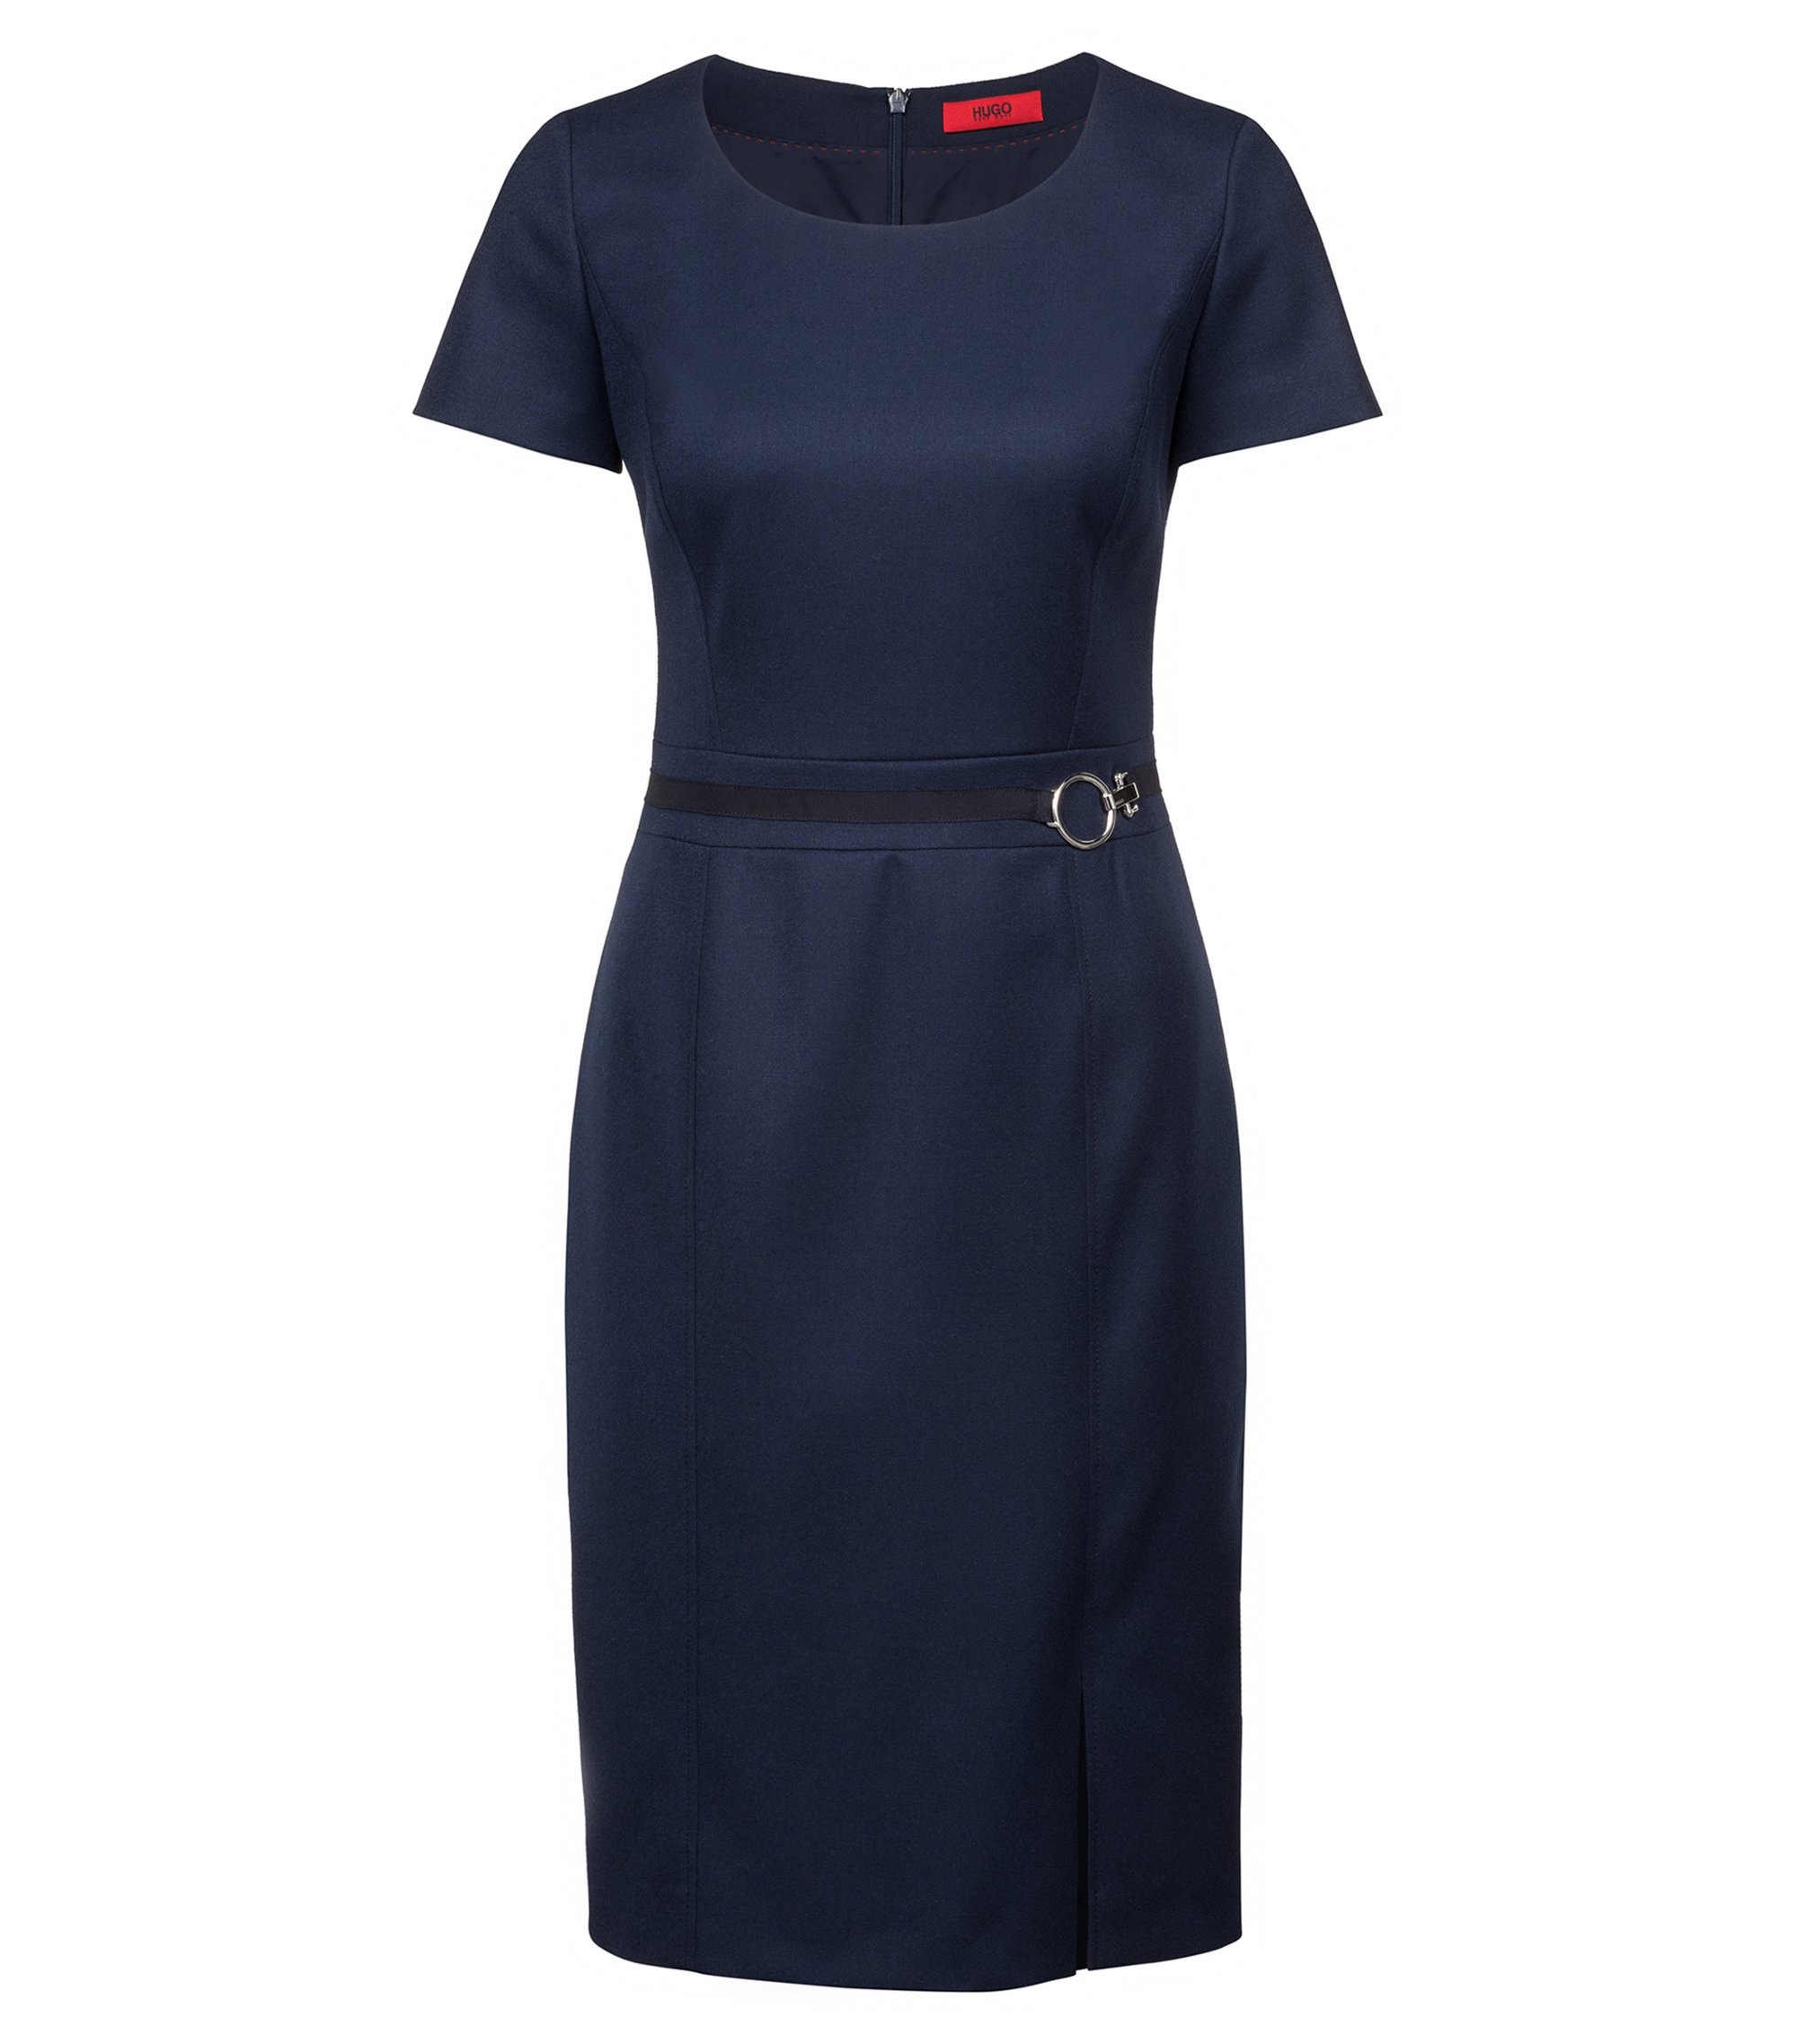 Short-sleeved shift dress with logo buckle, Dark Blue